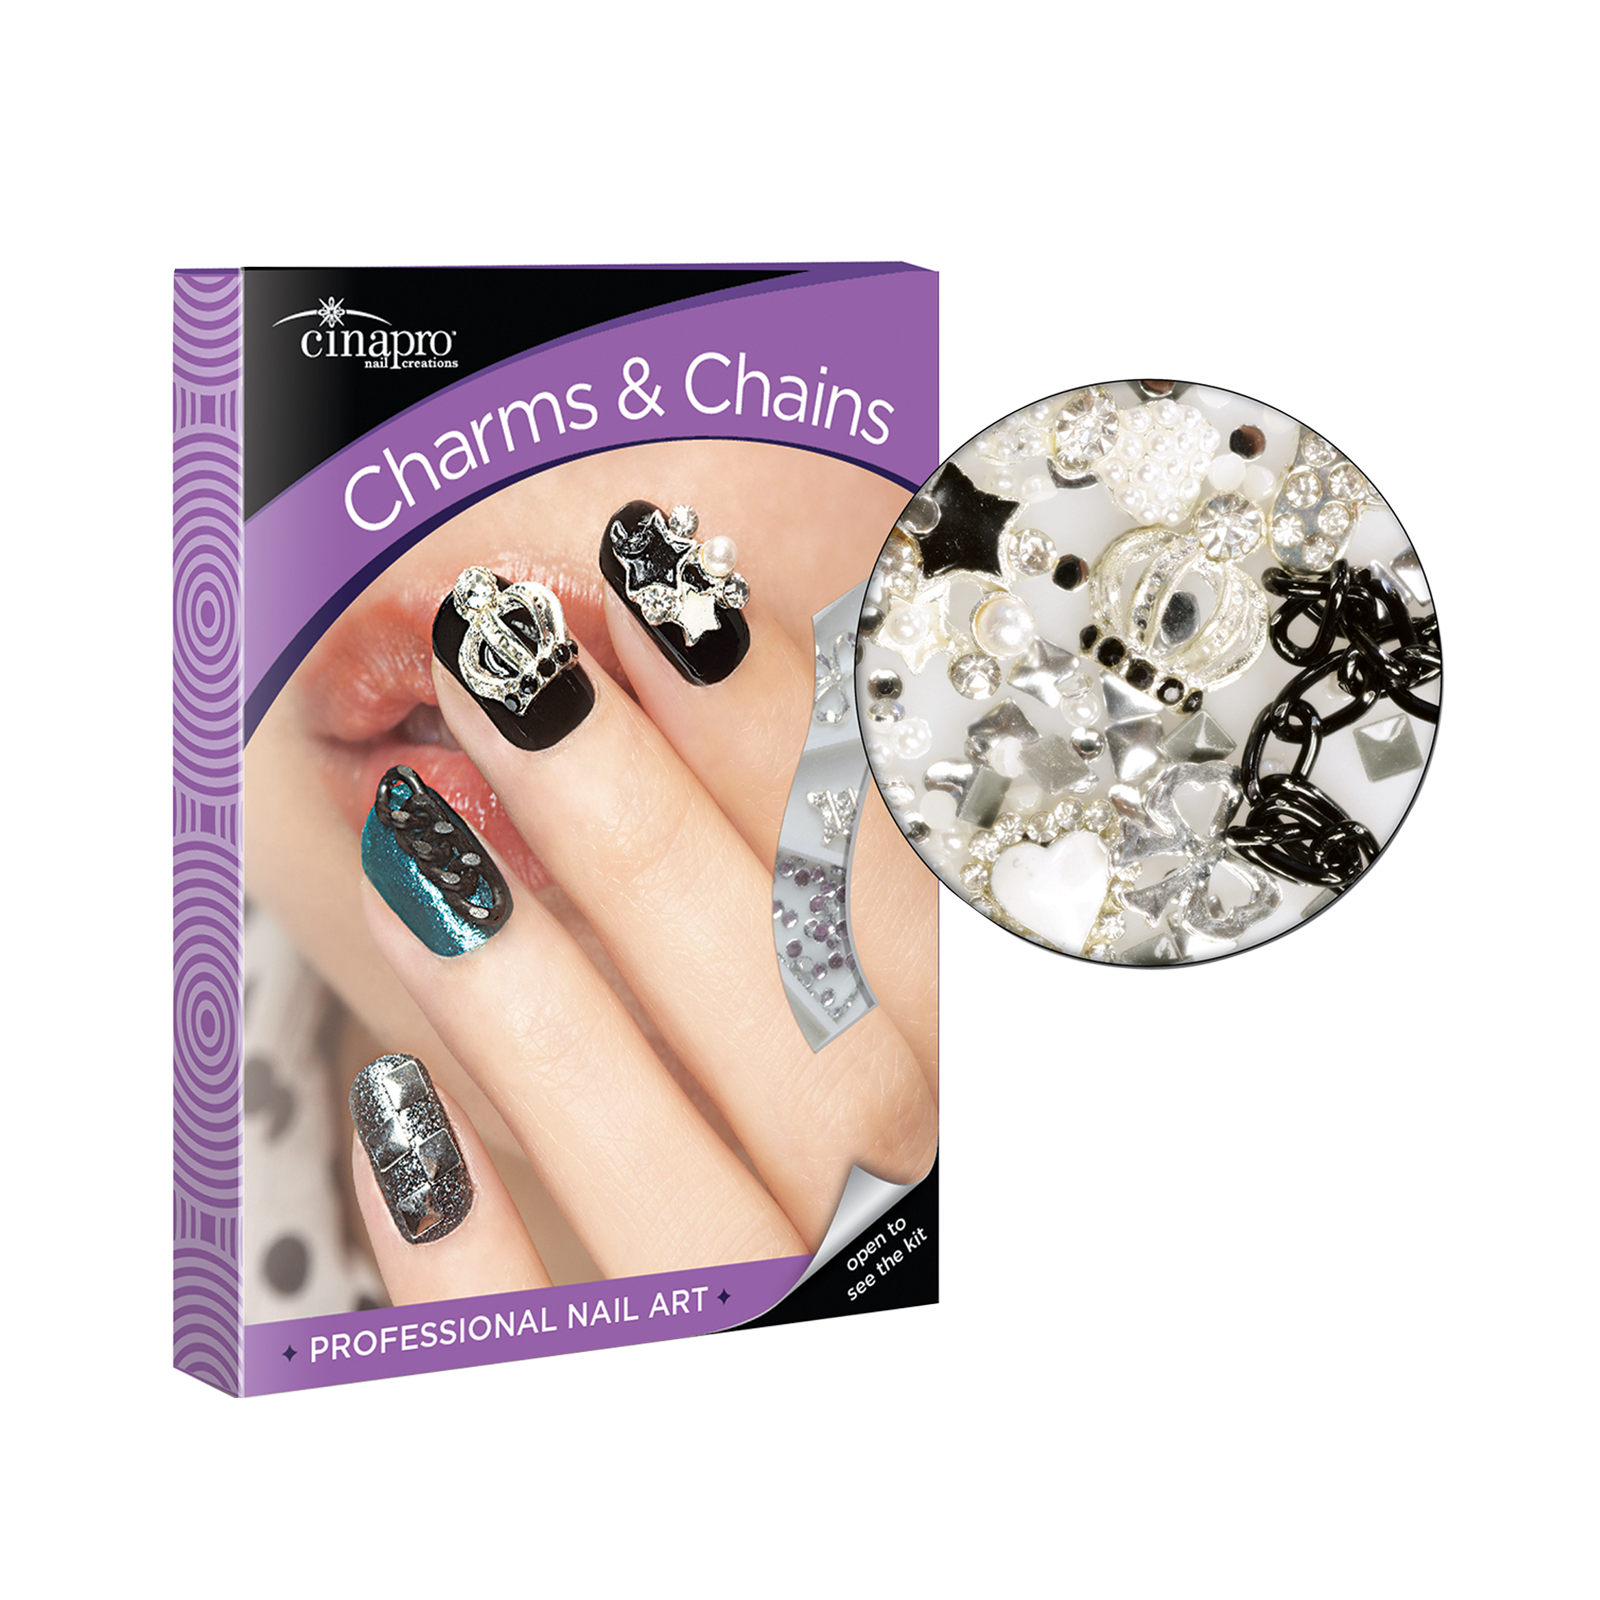 CinaPro Professional Nail Art Kit - Charms & Chains